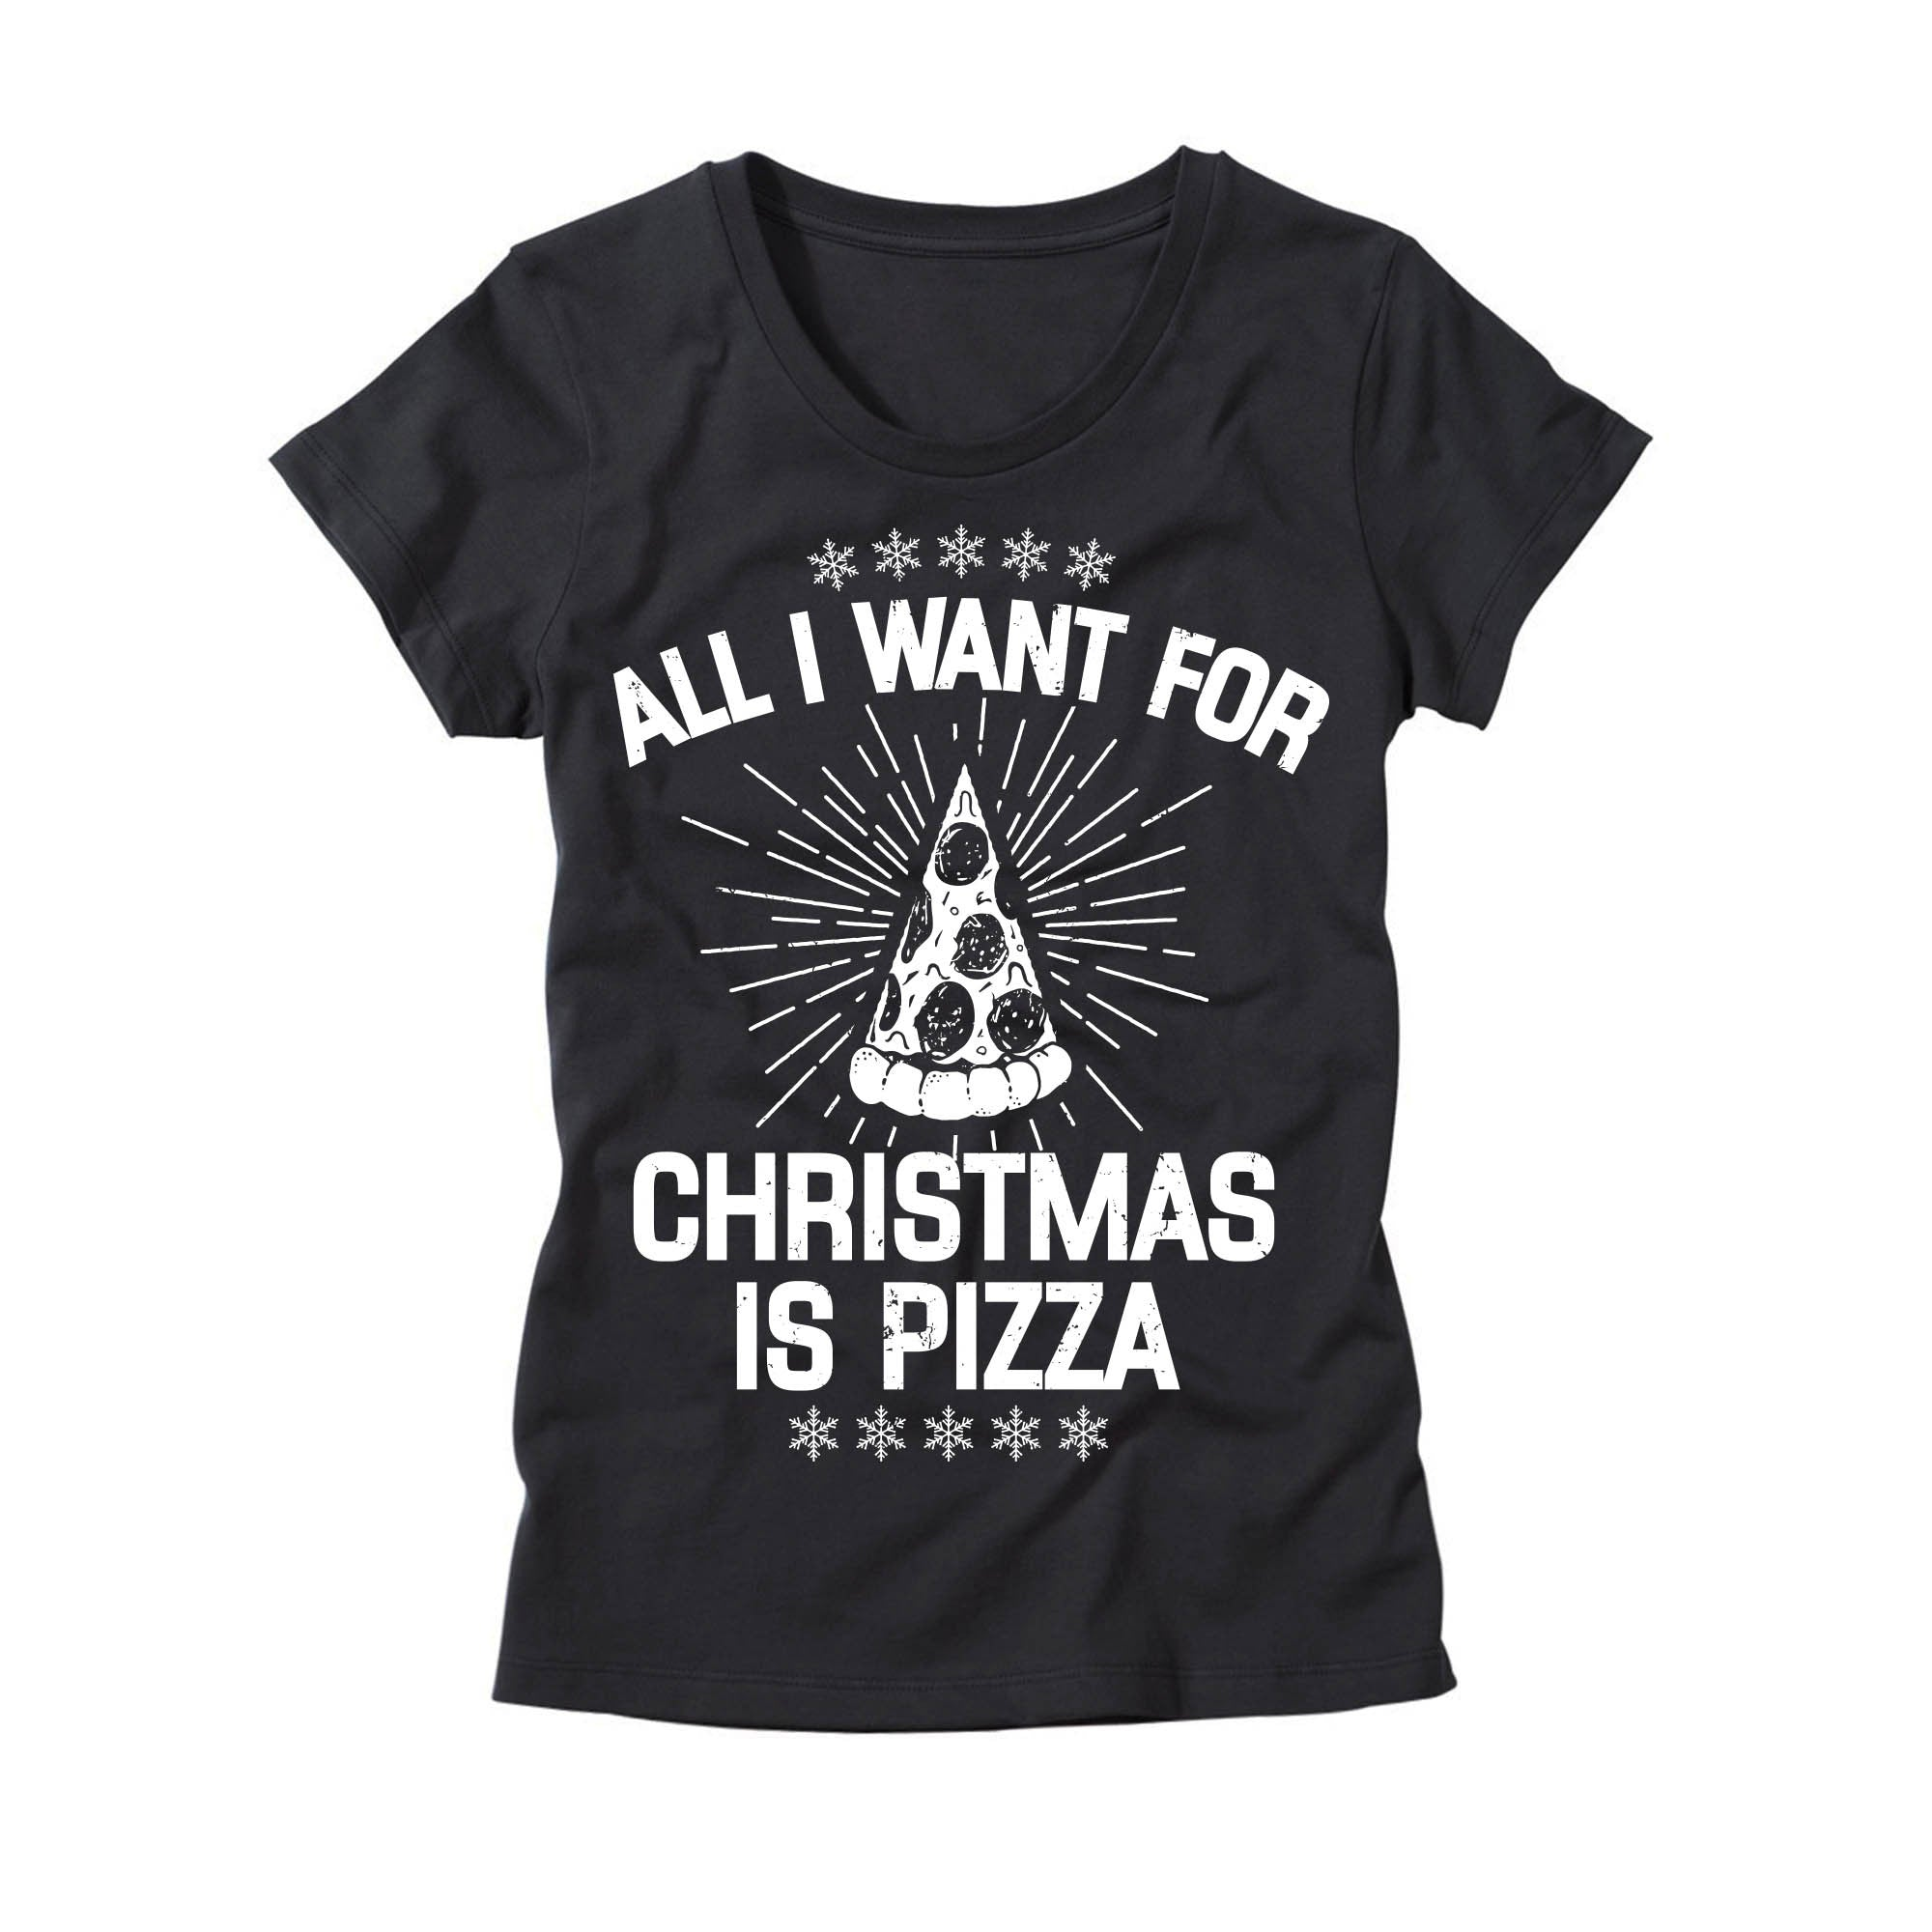 all i want for christmas is pizza womens t shirt